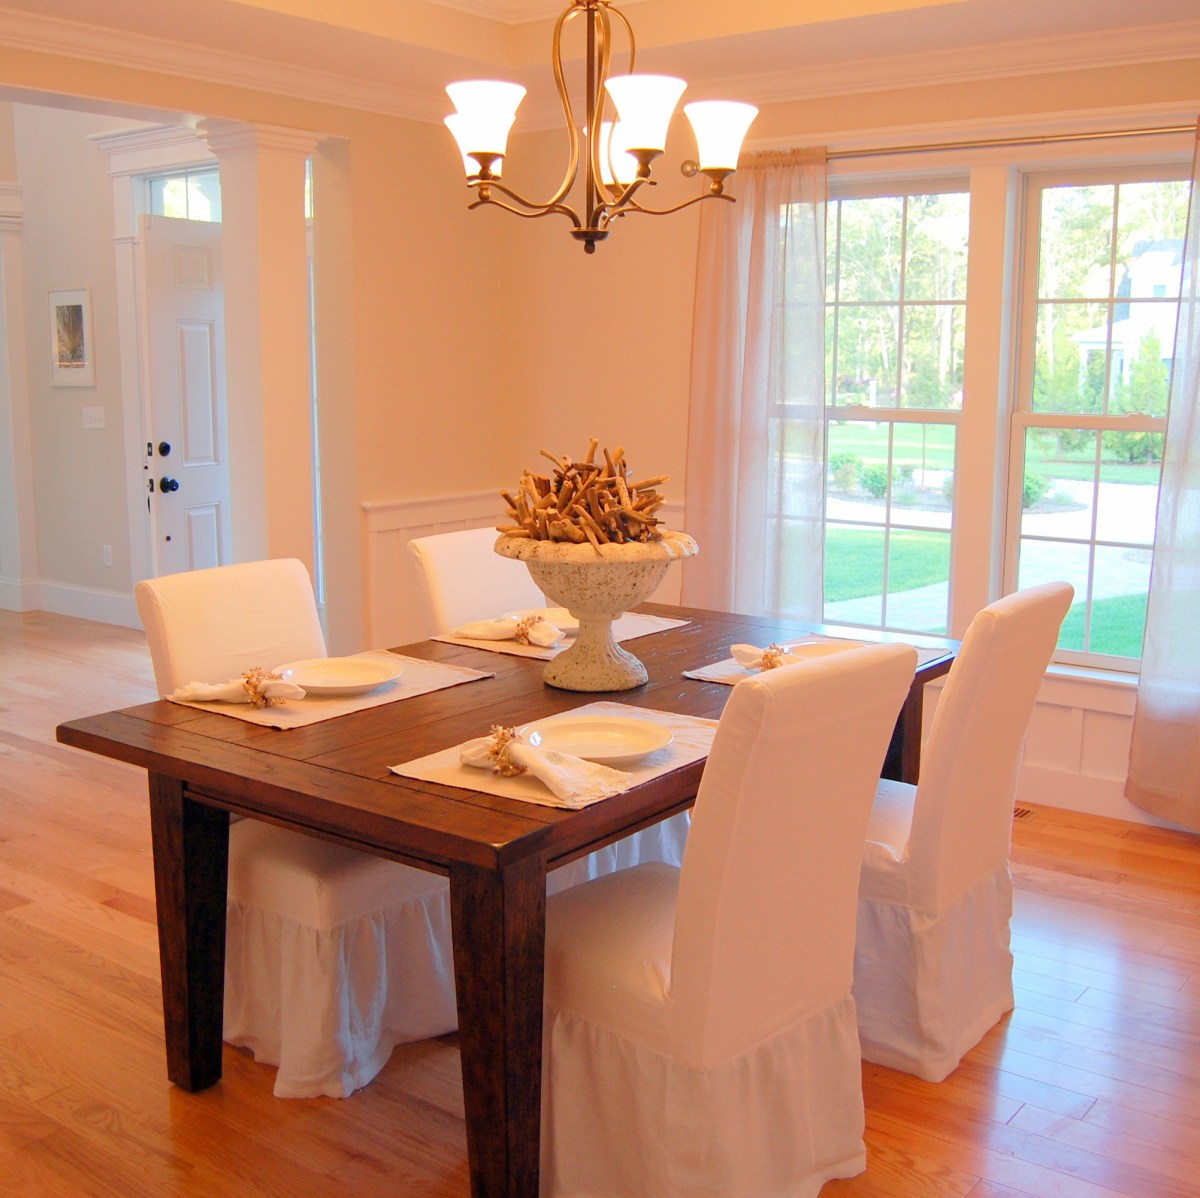 Staged homes provide a higher return on investment